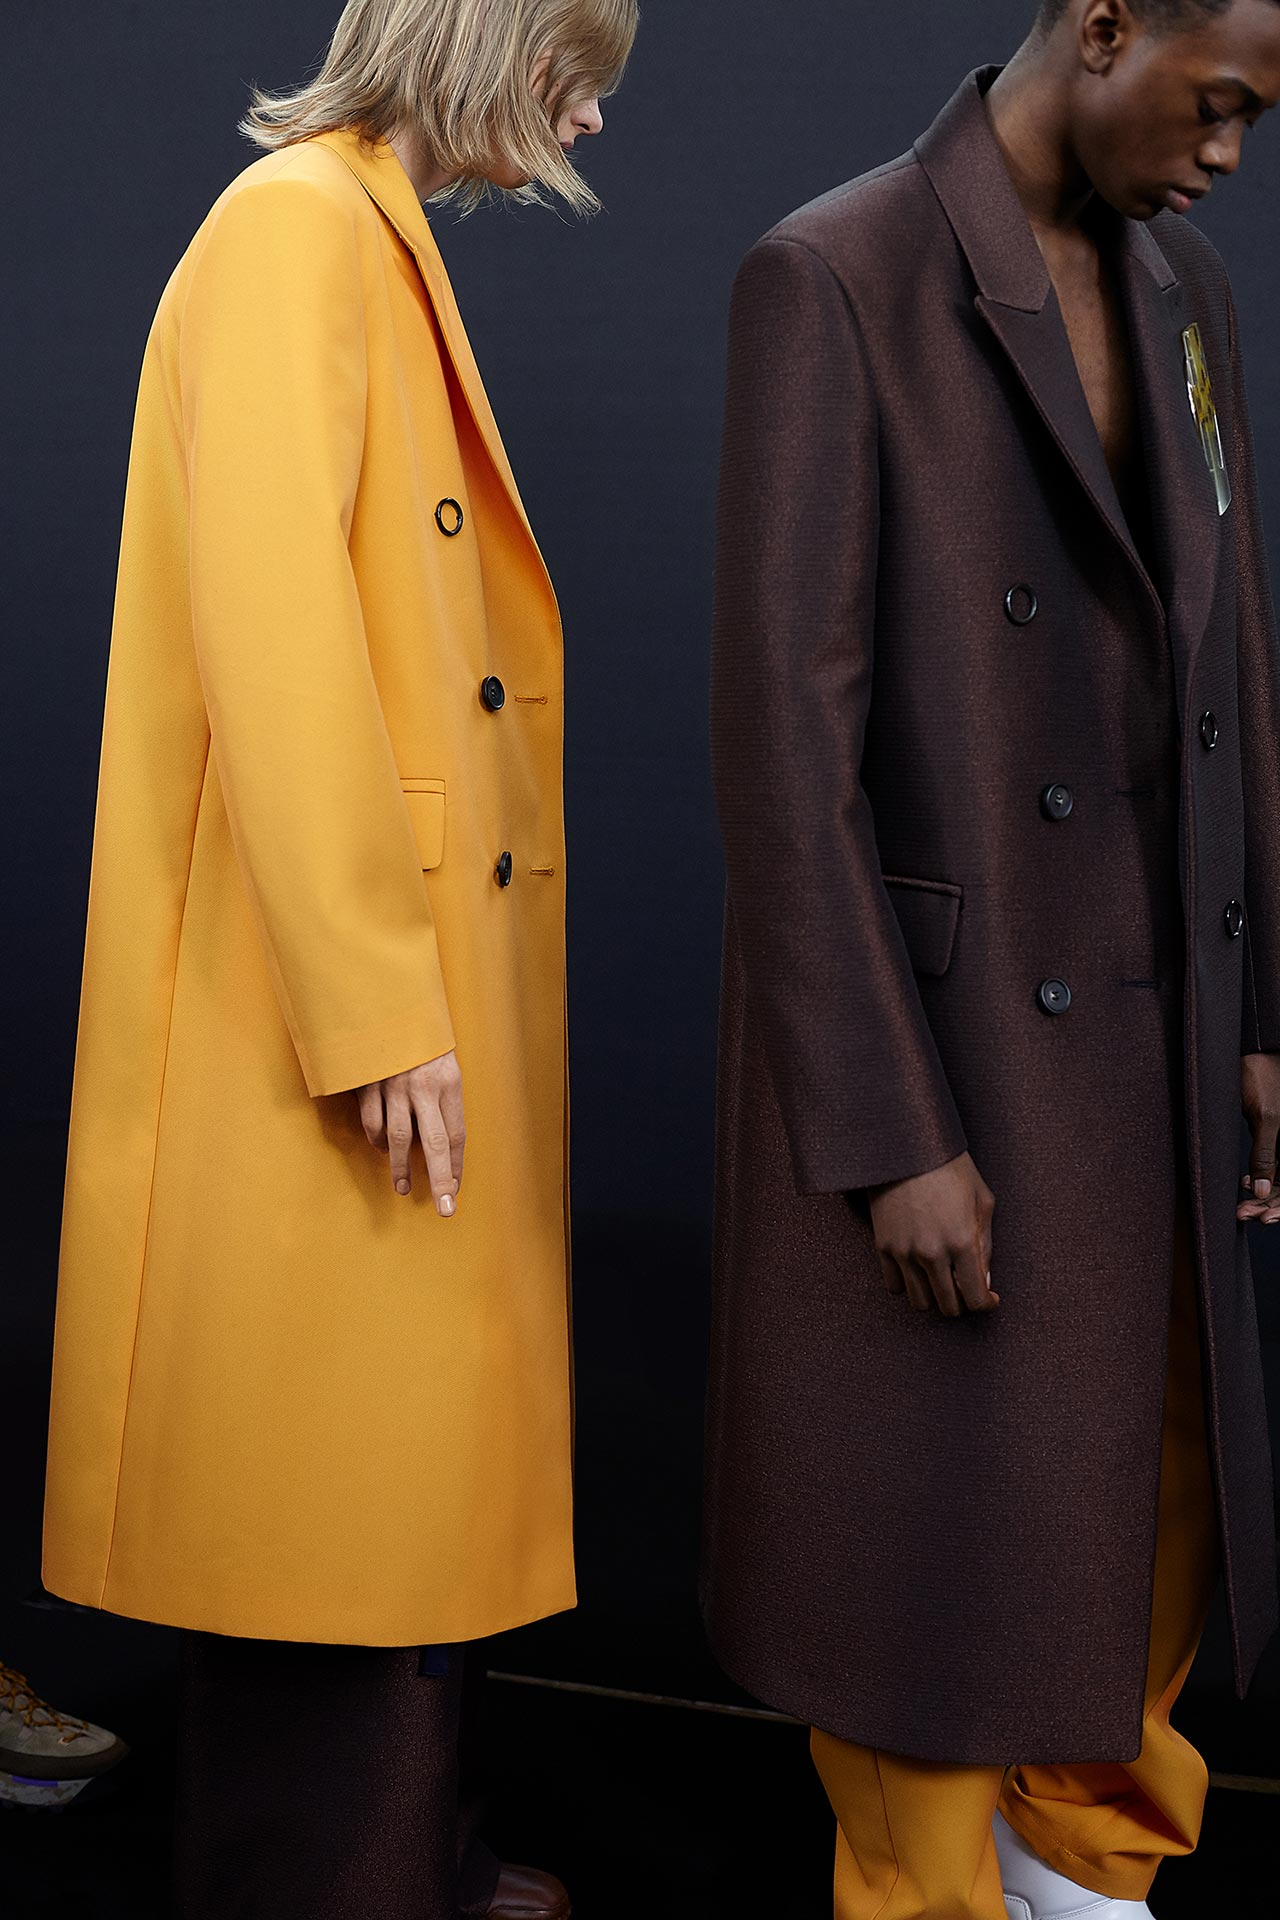 A yellow and a brown coat from the FW19-collection